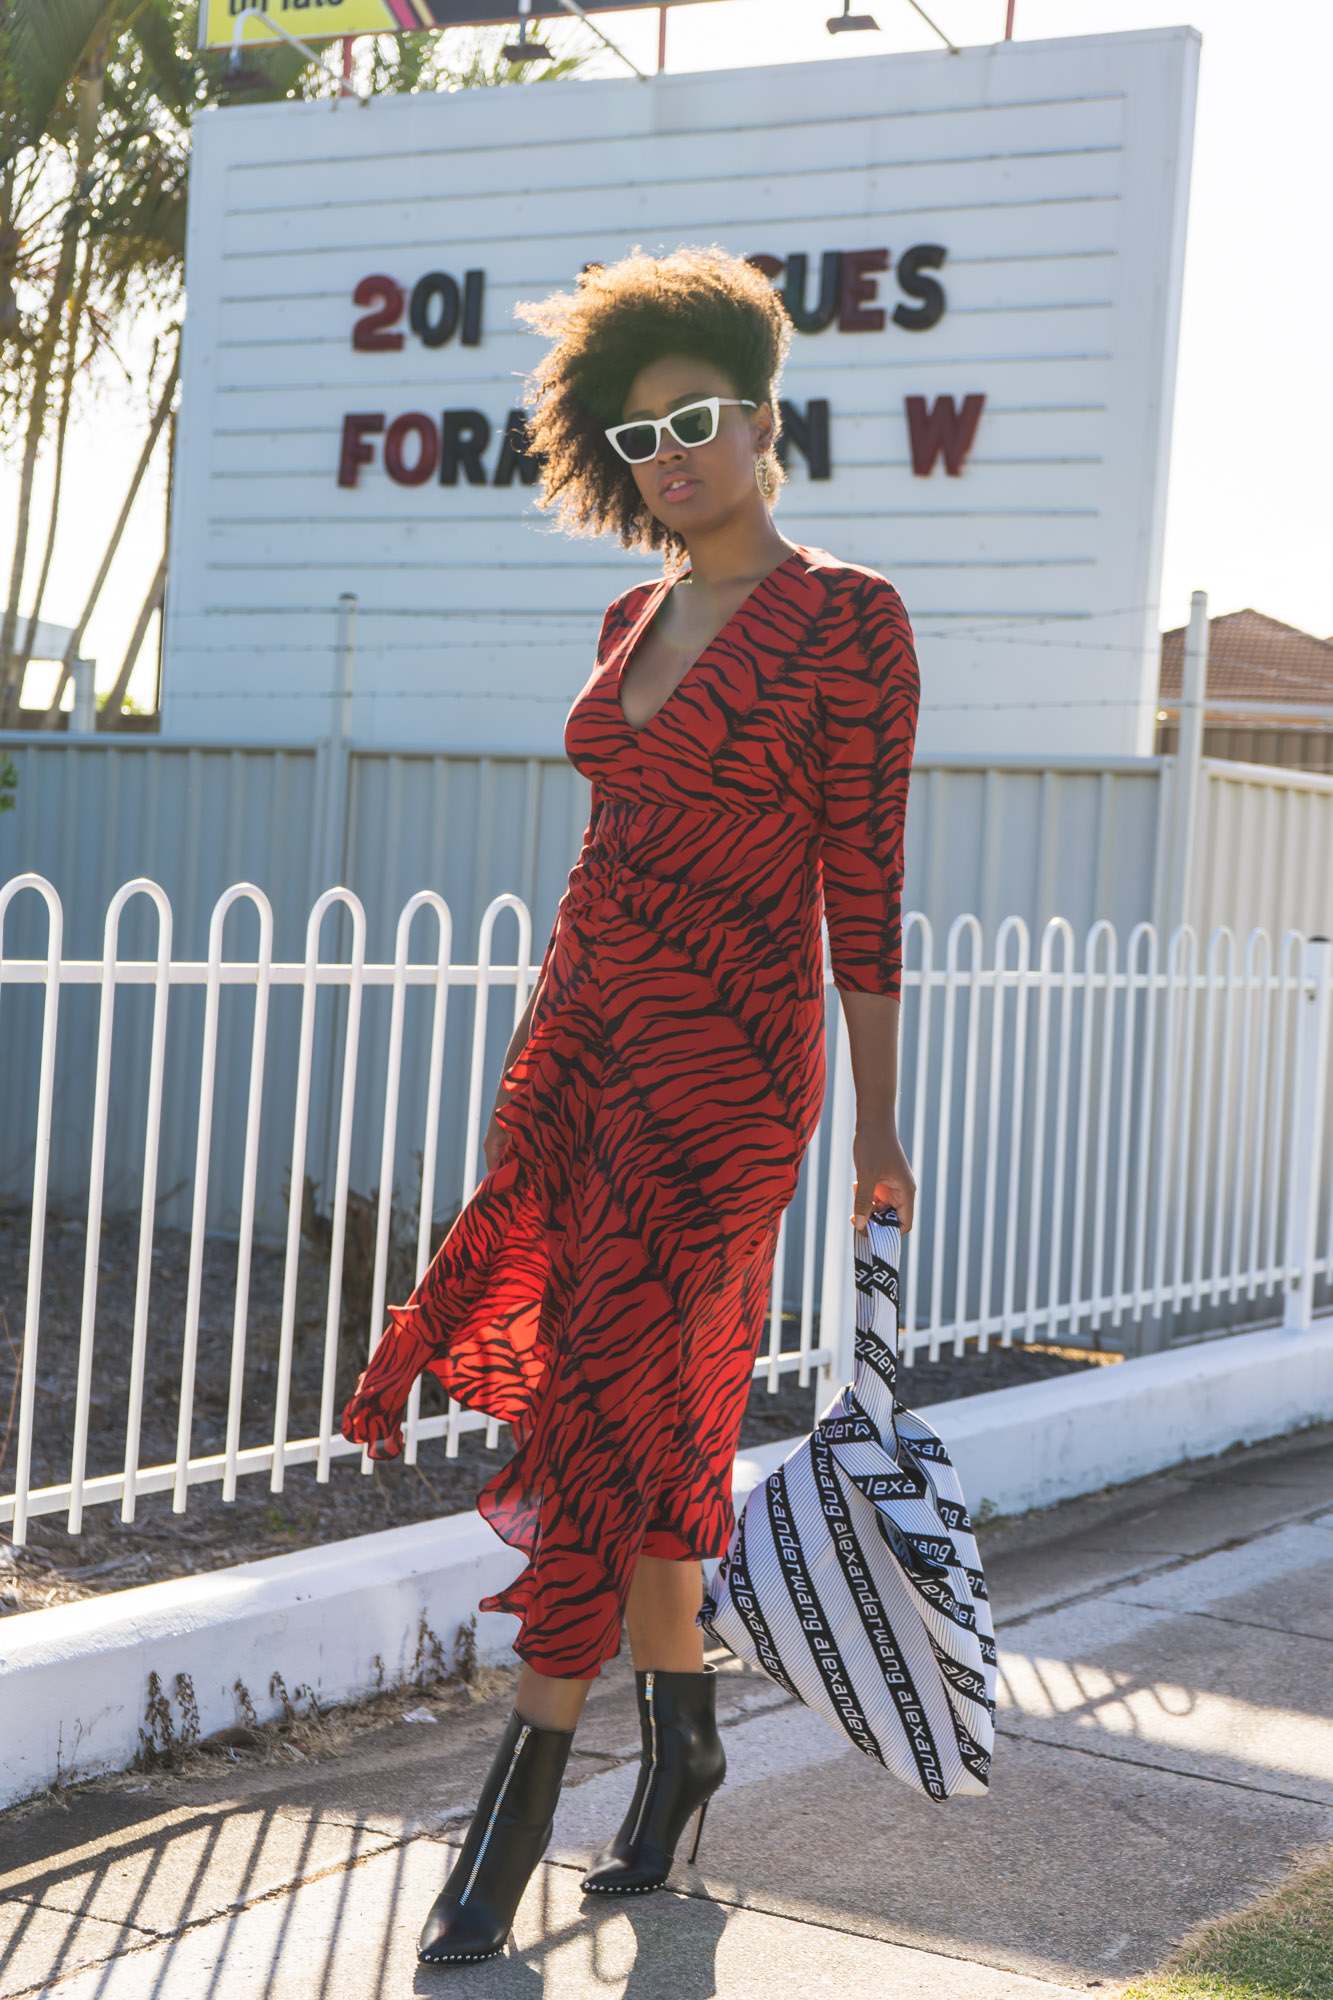 OUTFITS Archives - The Fashion Heist